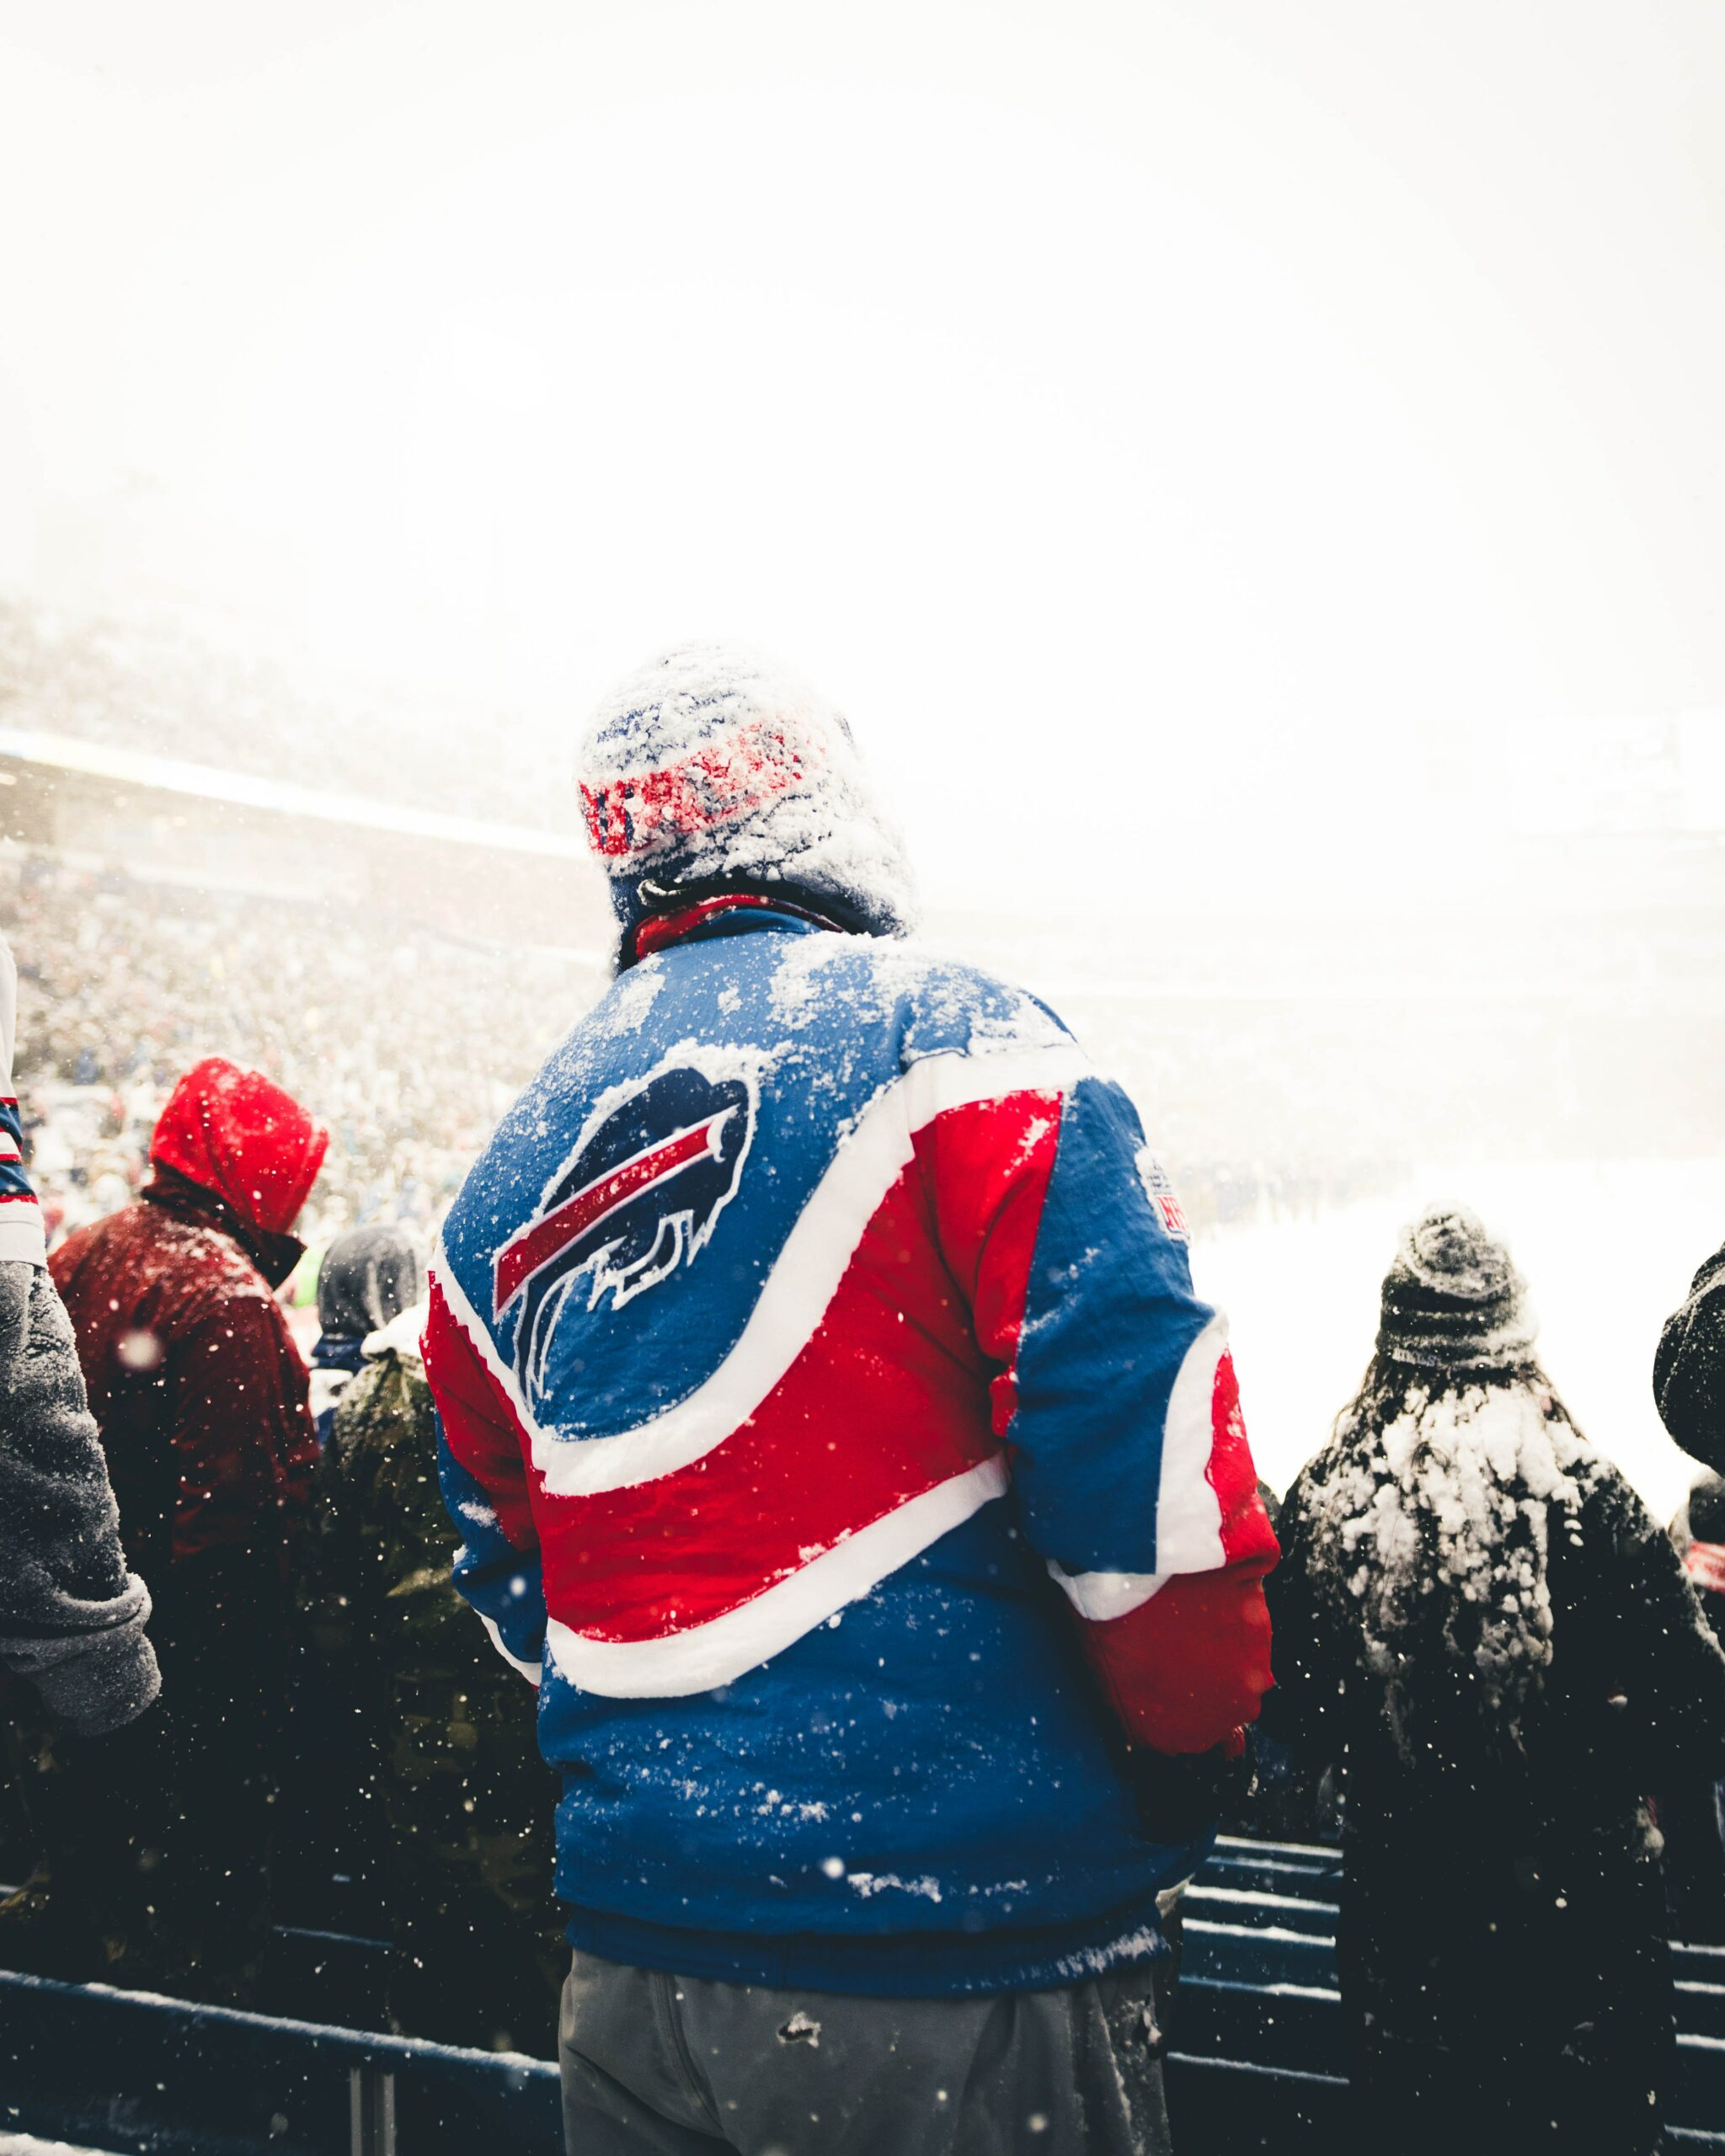 NFL 'Fan of the Year' Program Recognizes Fans' Passion